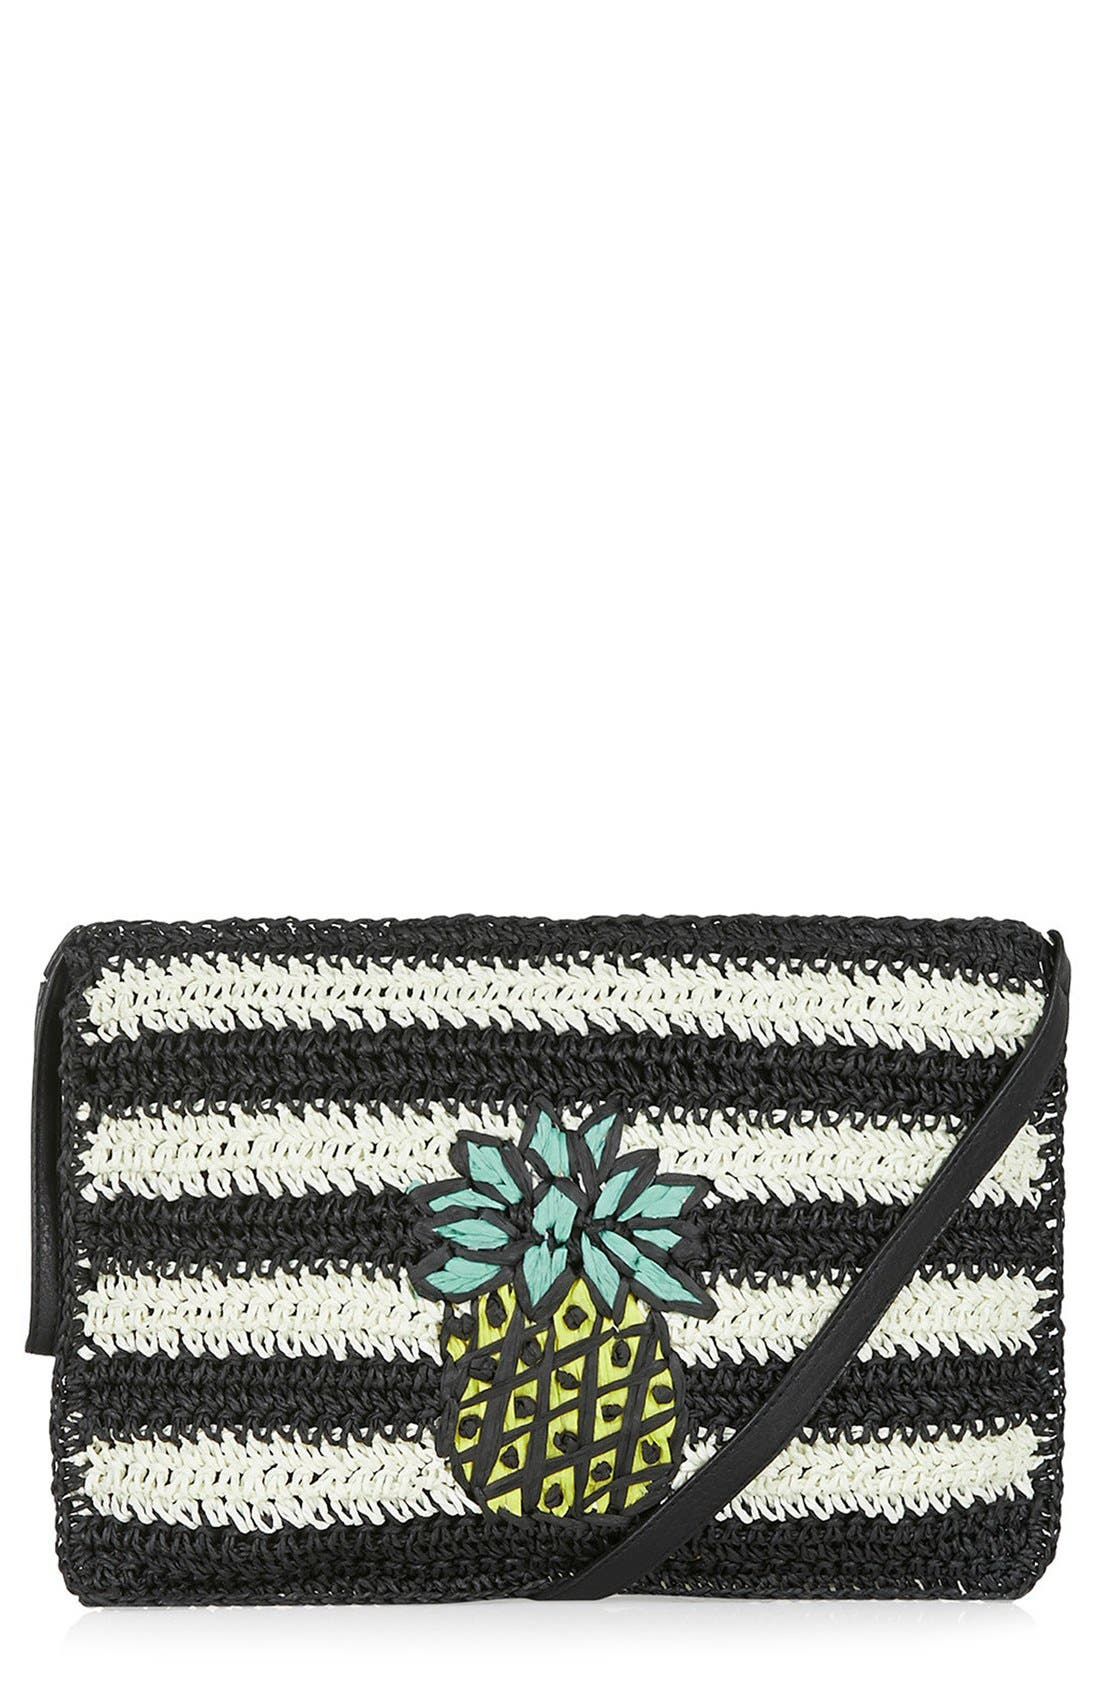 Main Image - Topshop 'Pineapple' Woven Clutch